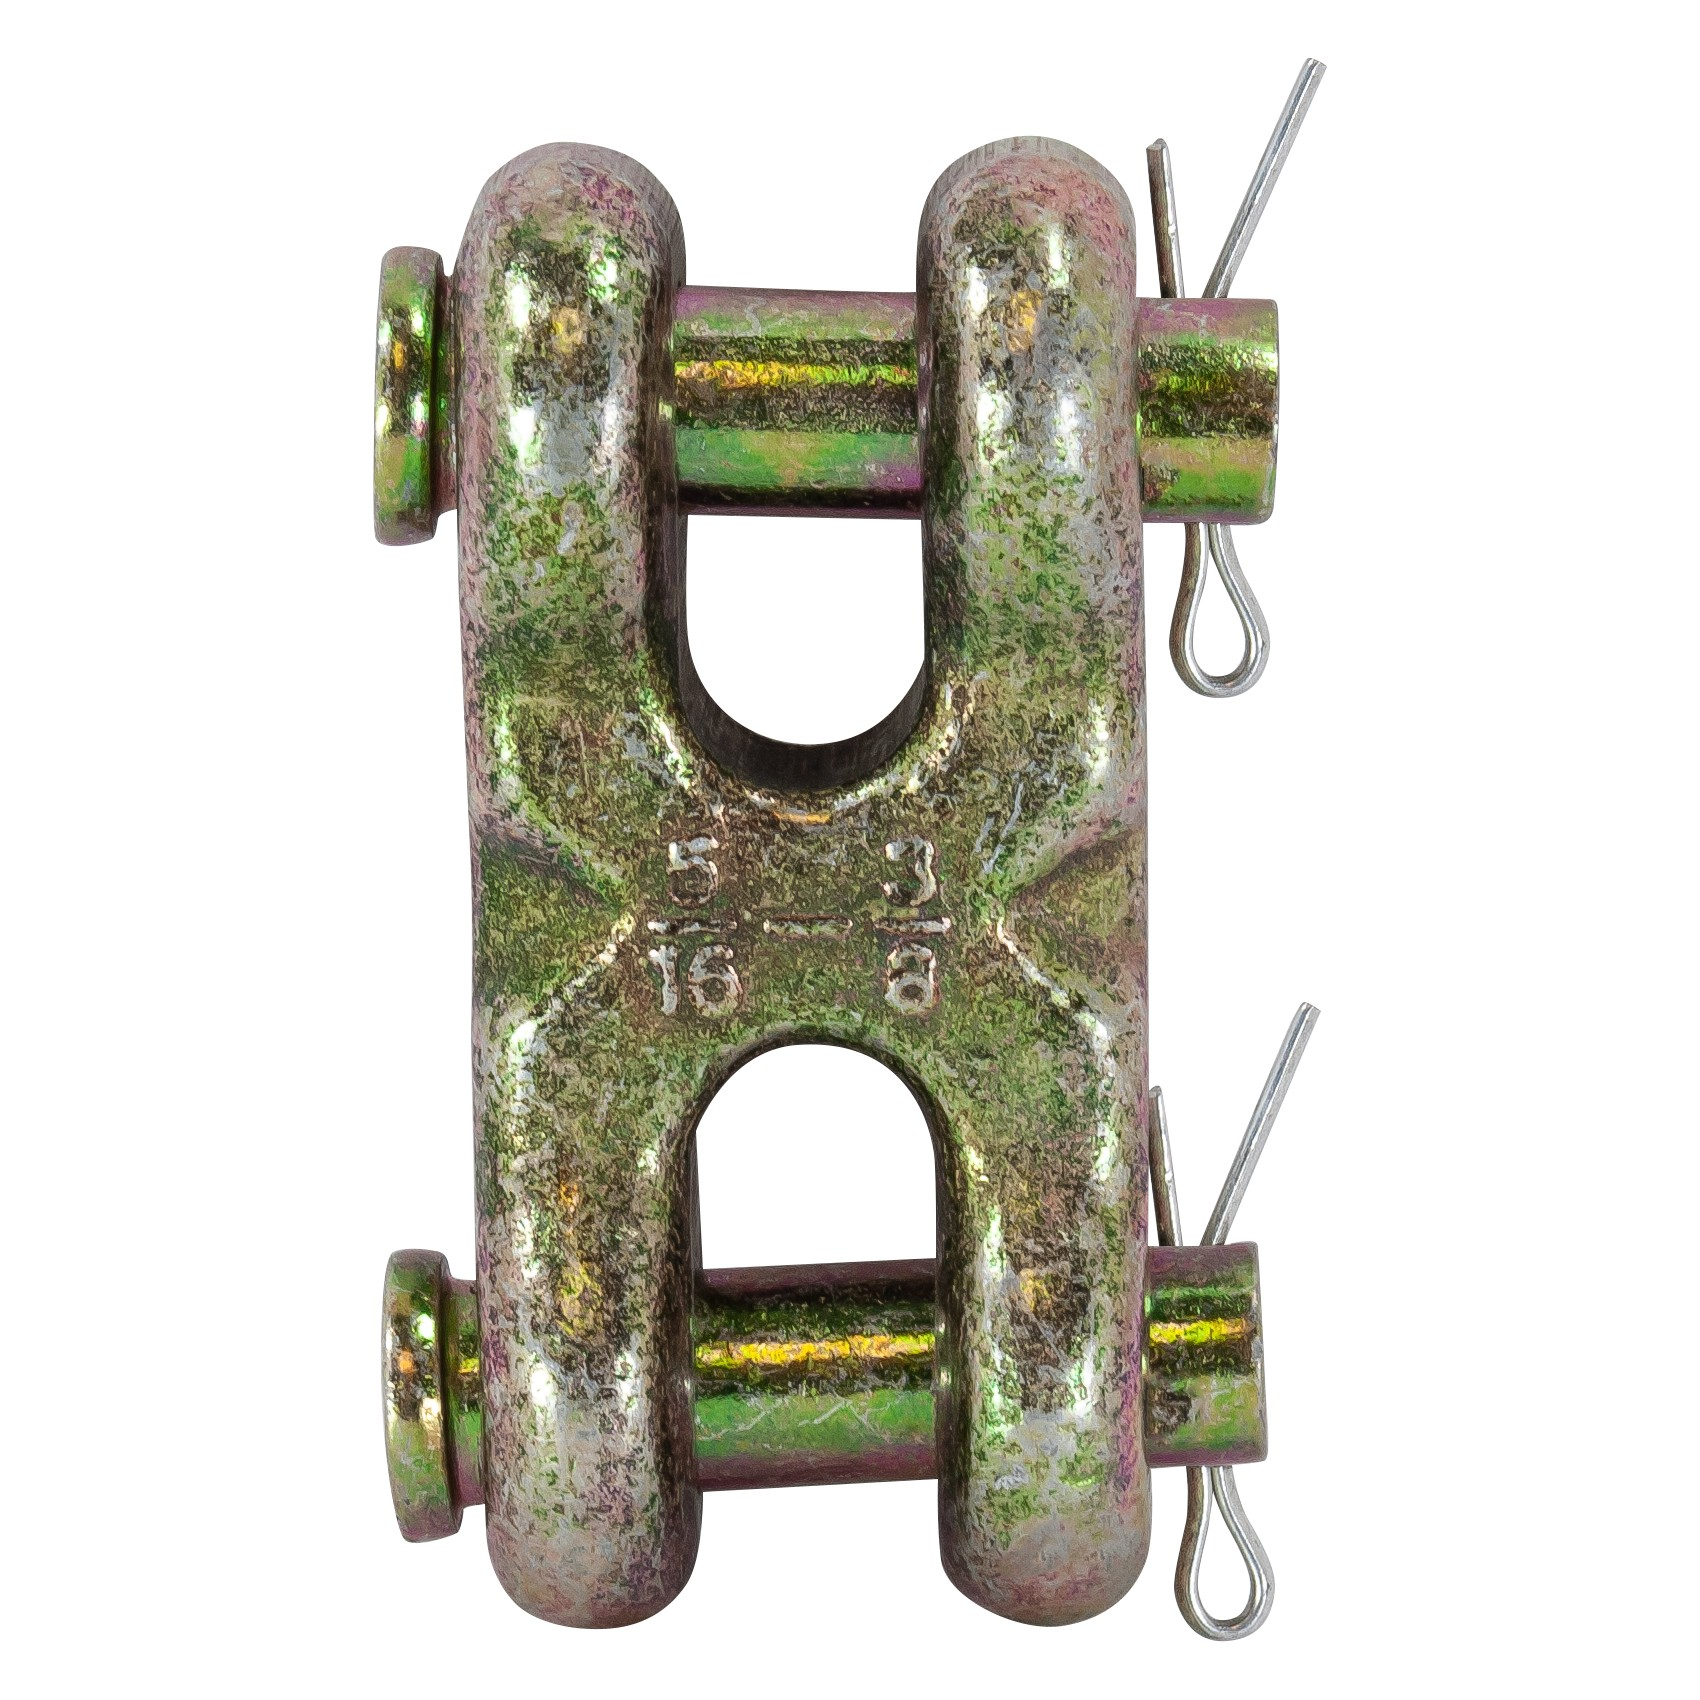 Alloy Double Clevis Links - 3/8""